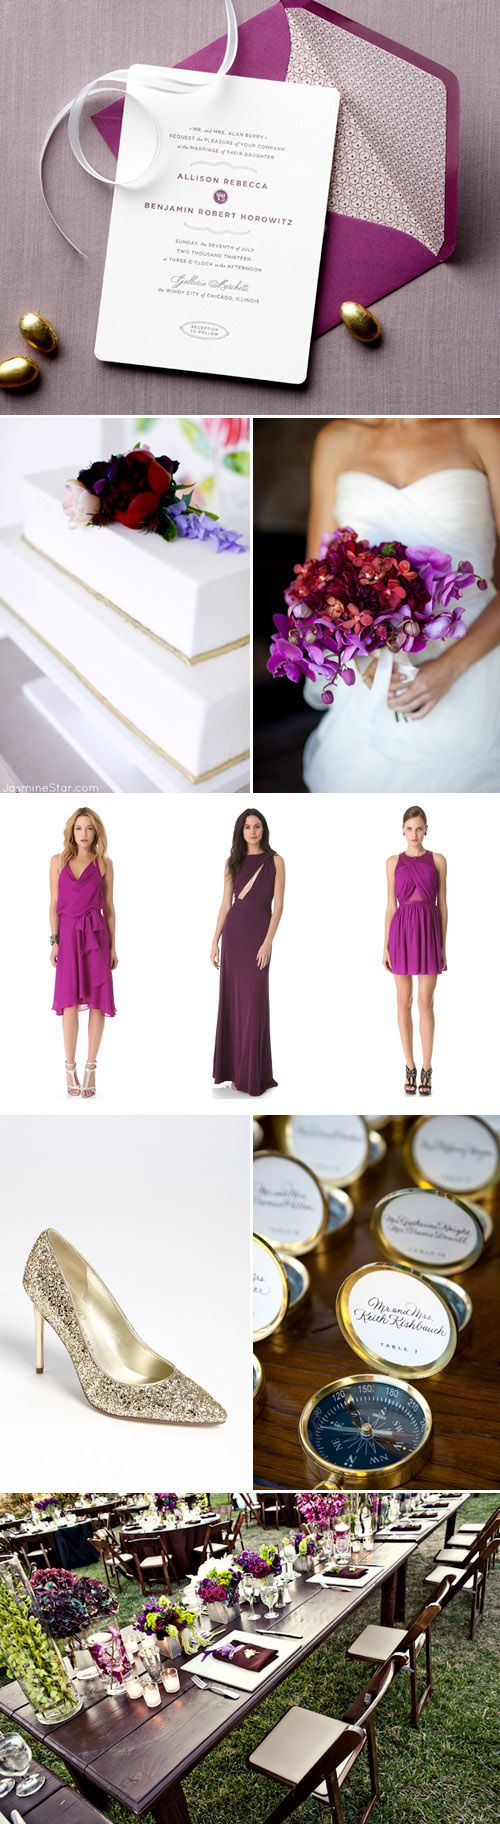 125 best Wedding Colors images on Pinterest | Marriage, Wedding ...